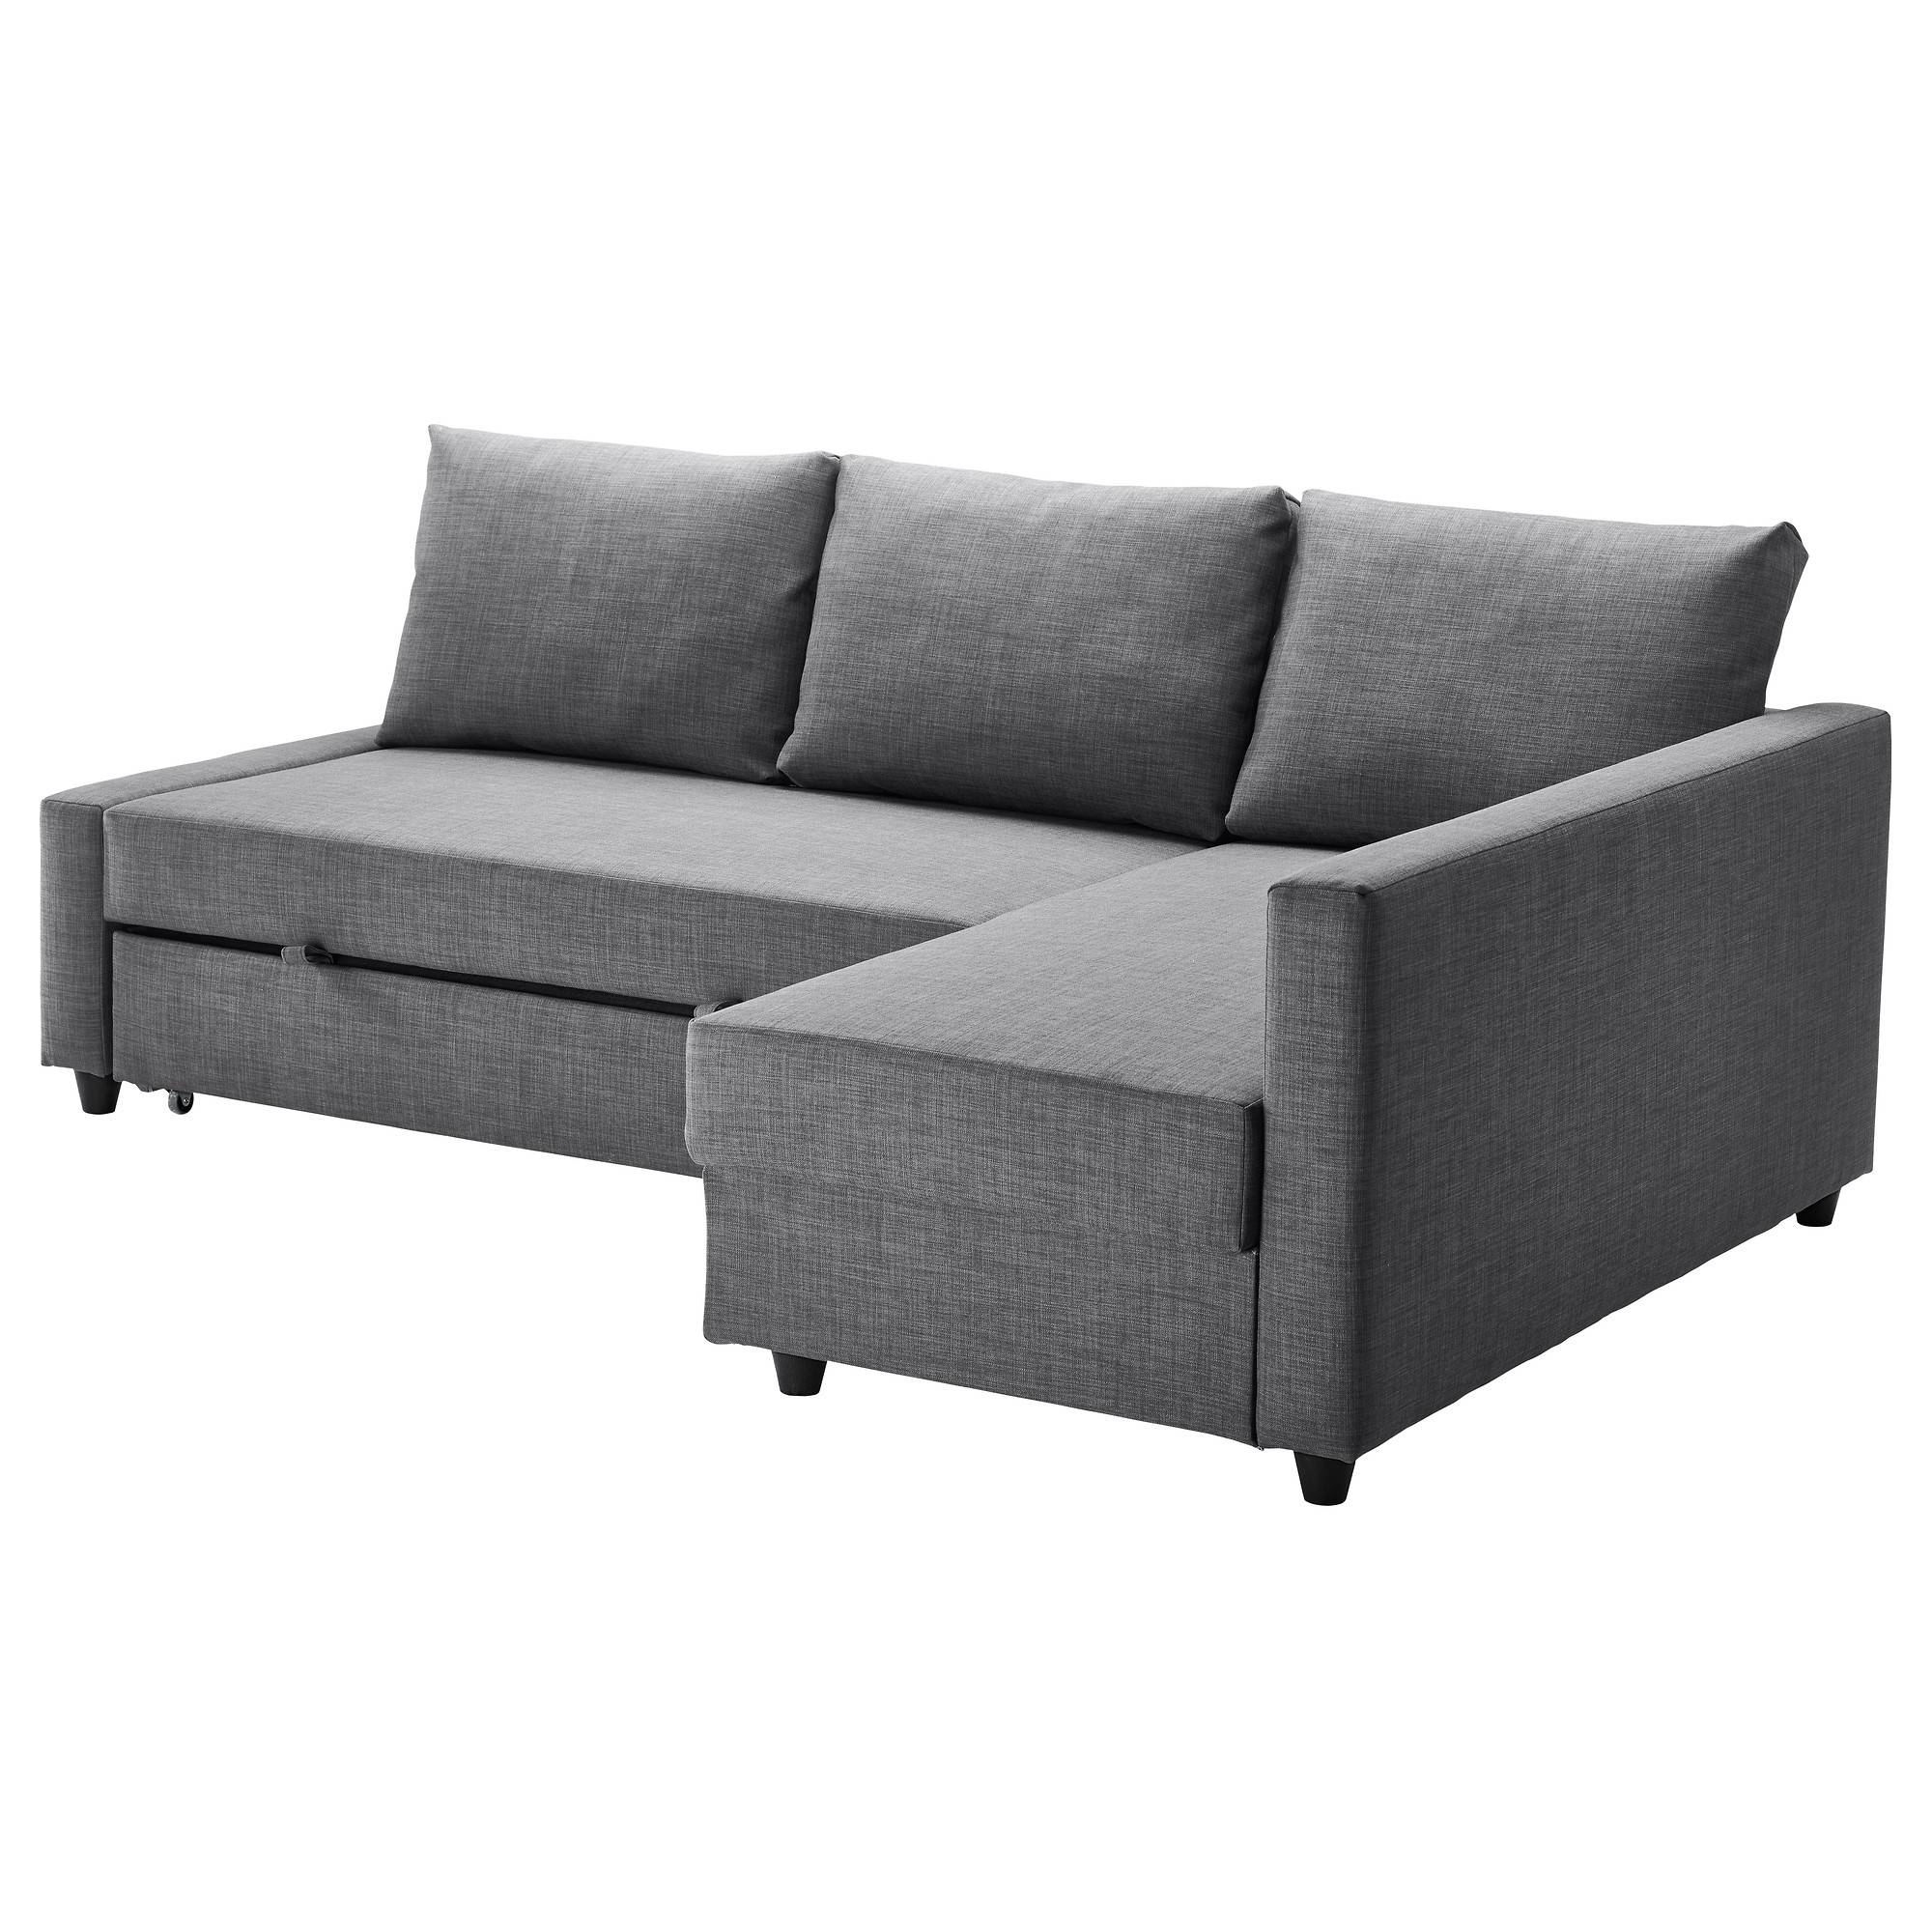 Friheten Corner Sofa-Bed With Storage Skiftebo Dark Grey - Ikea pertaining to Sofa Beds Chairs (Image 6 of 15)